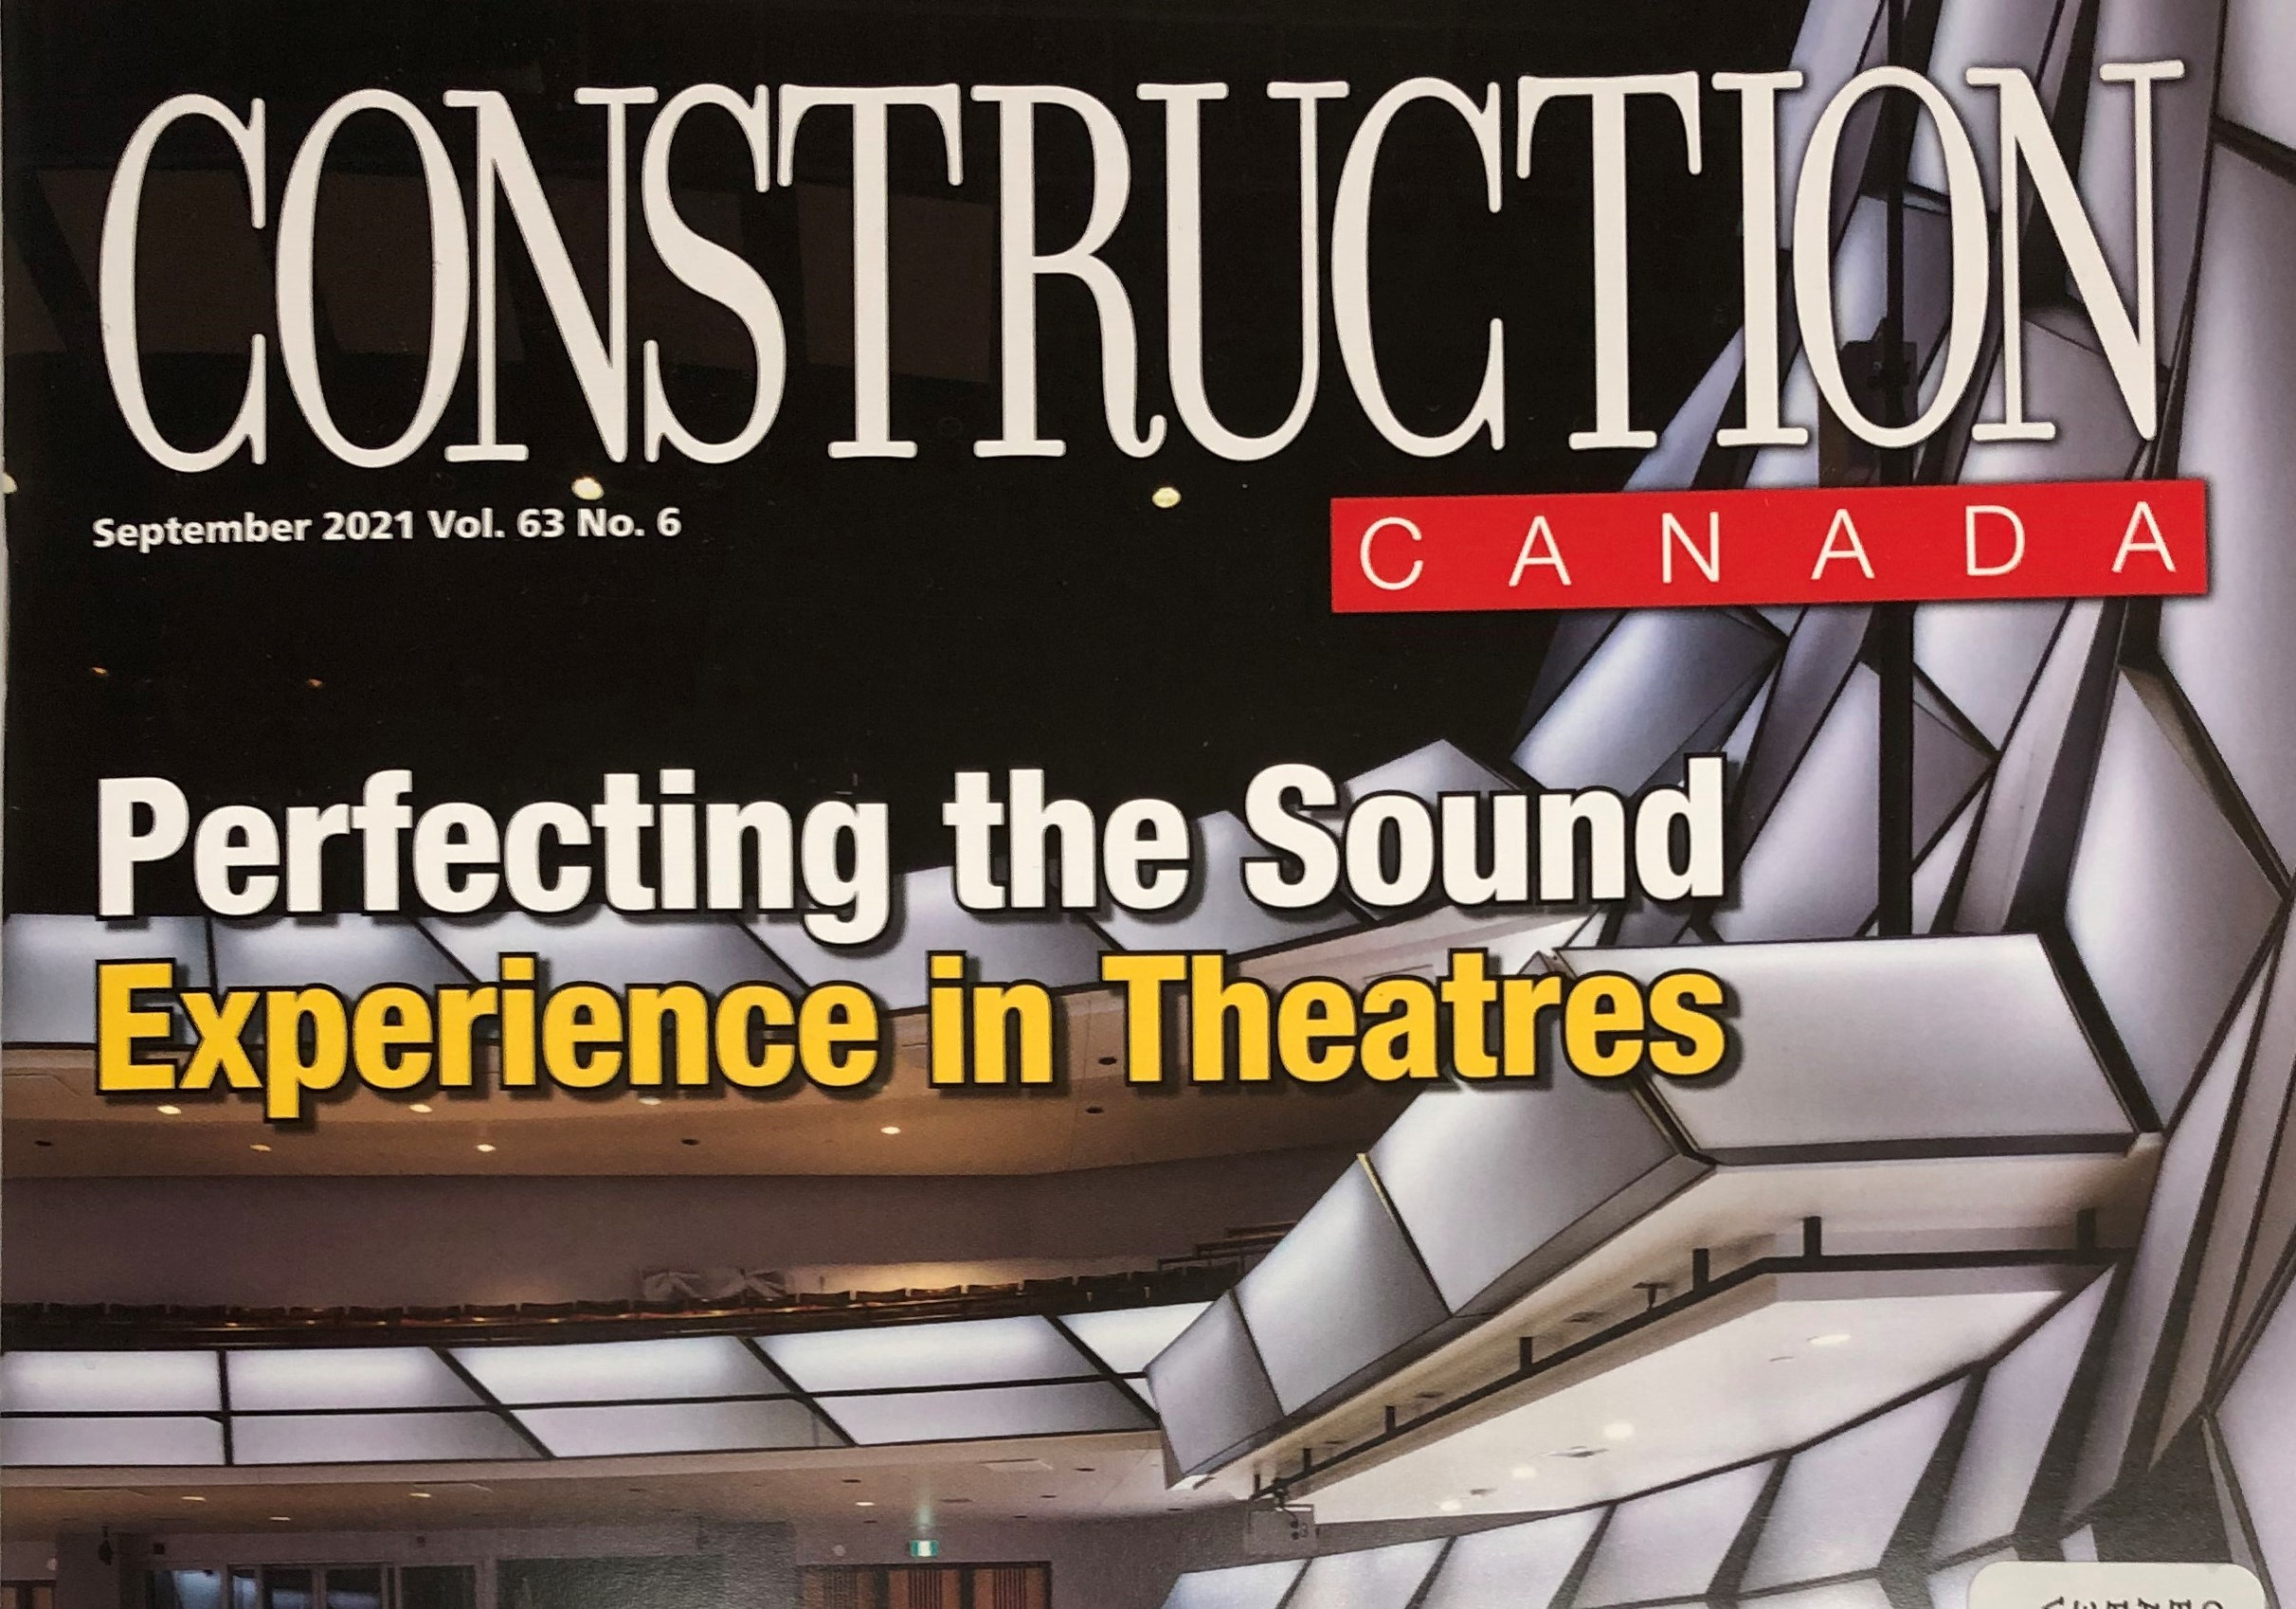 QET and BMO Theatre featured in Construct Connect